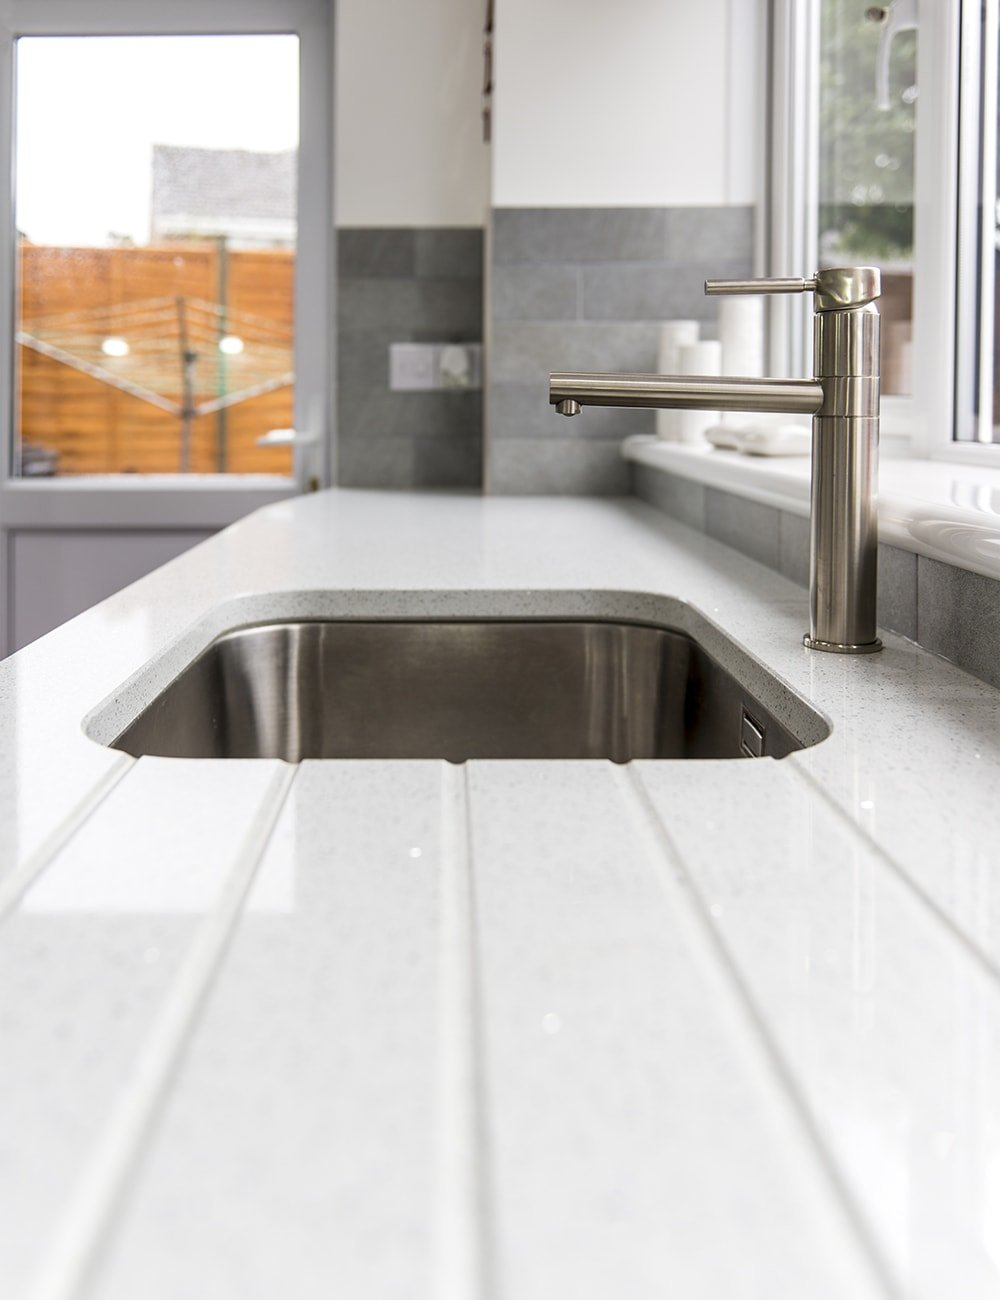 silestone-blanco-stellar-quartz-crawley-west-sussex-150333a-min